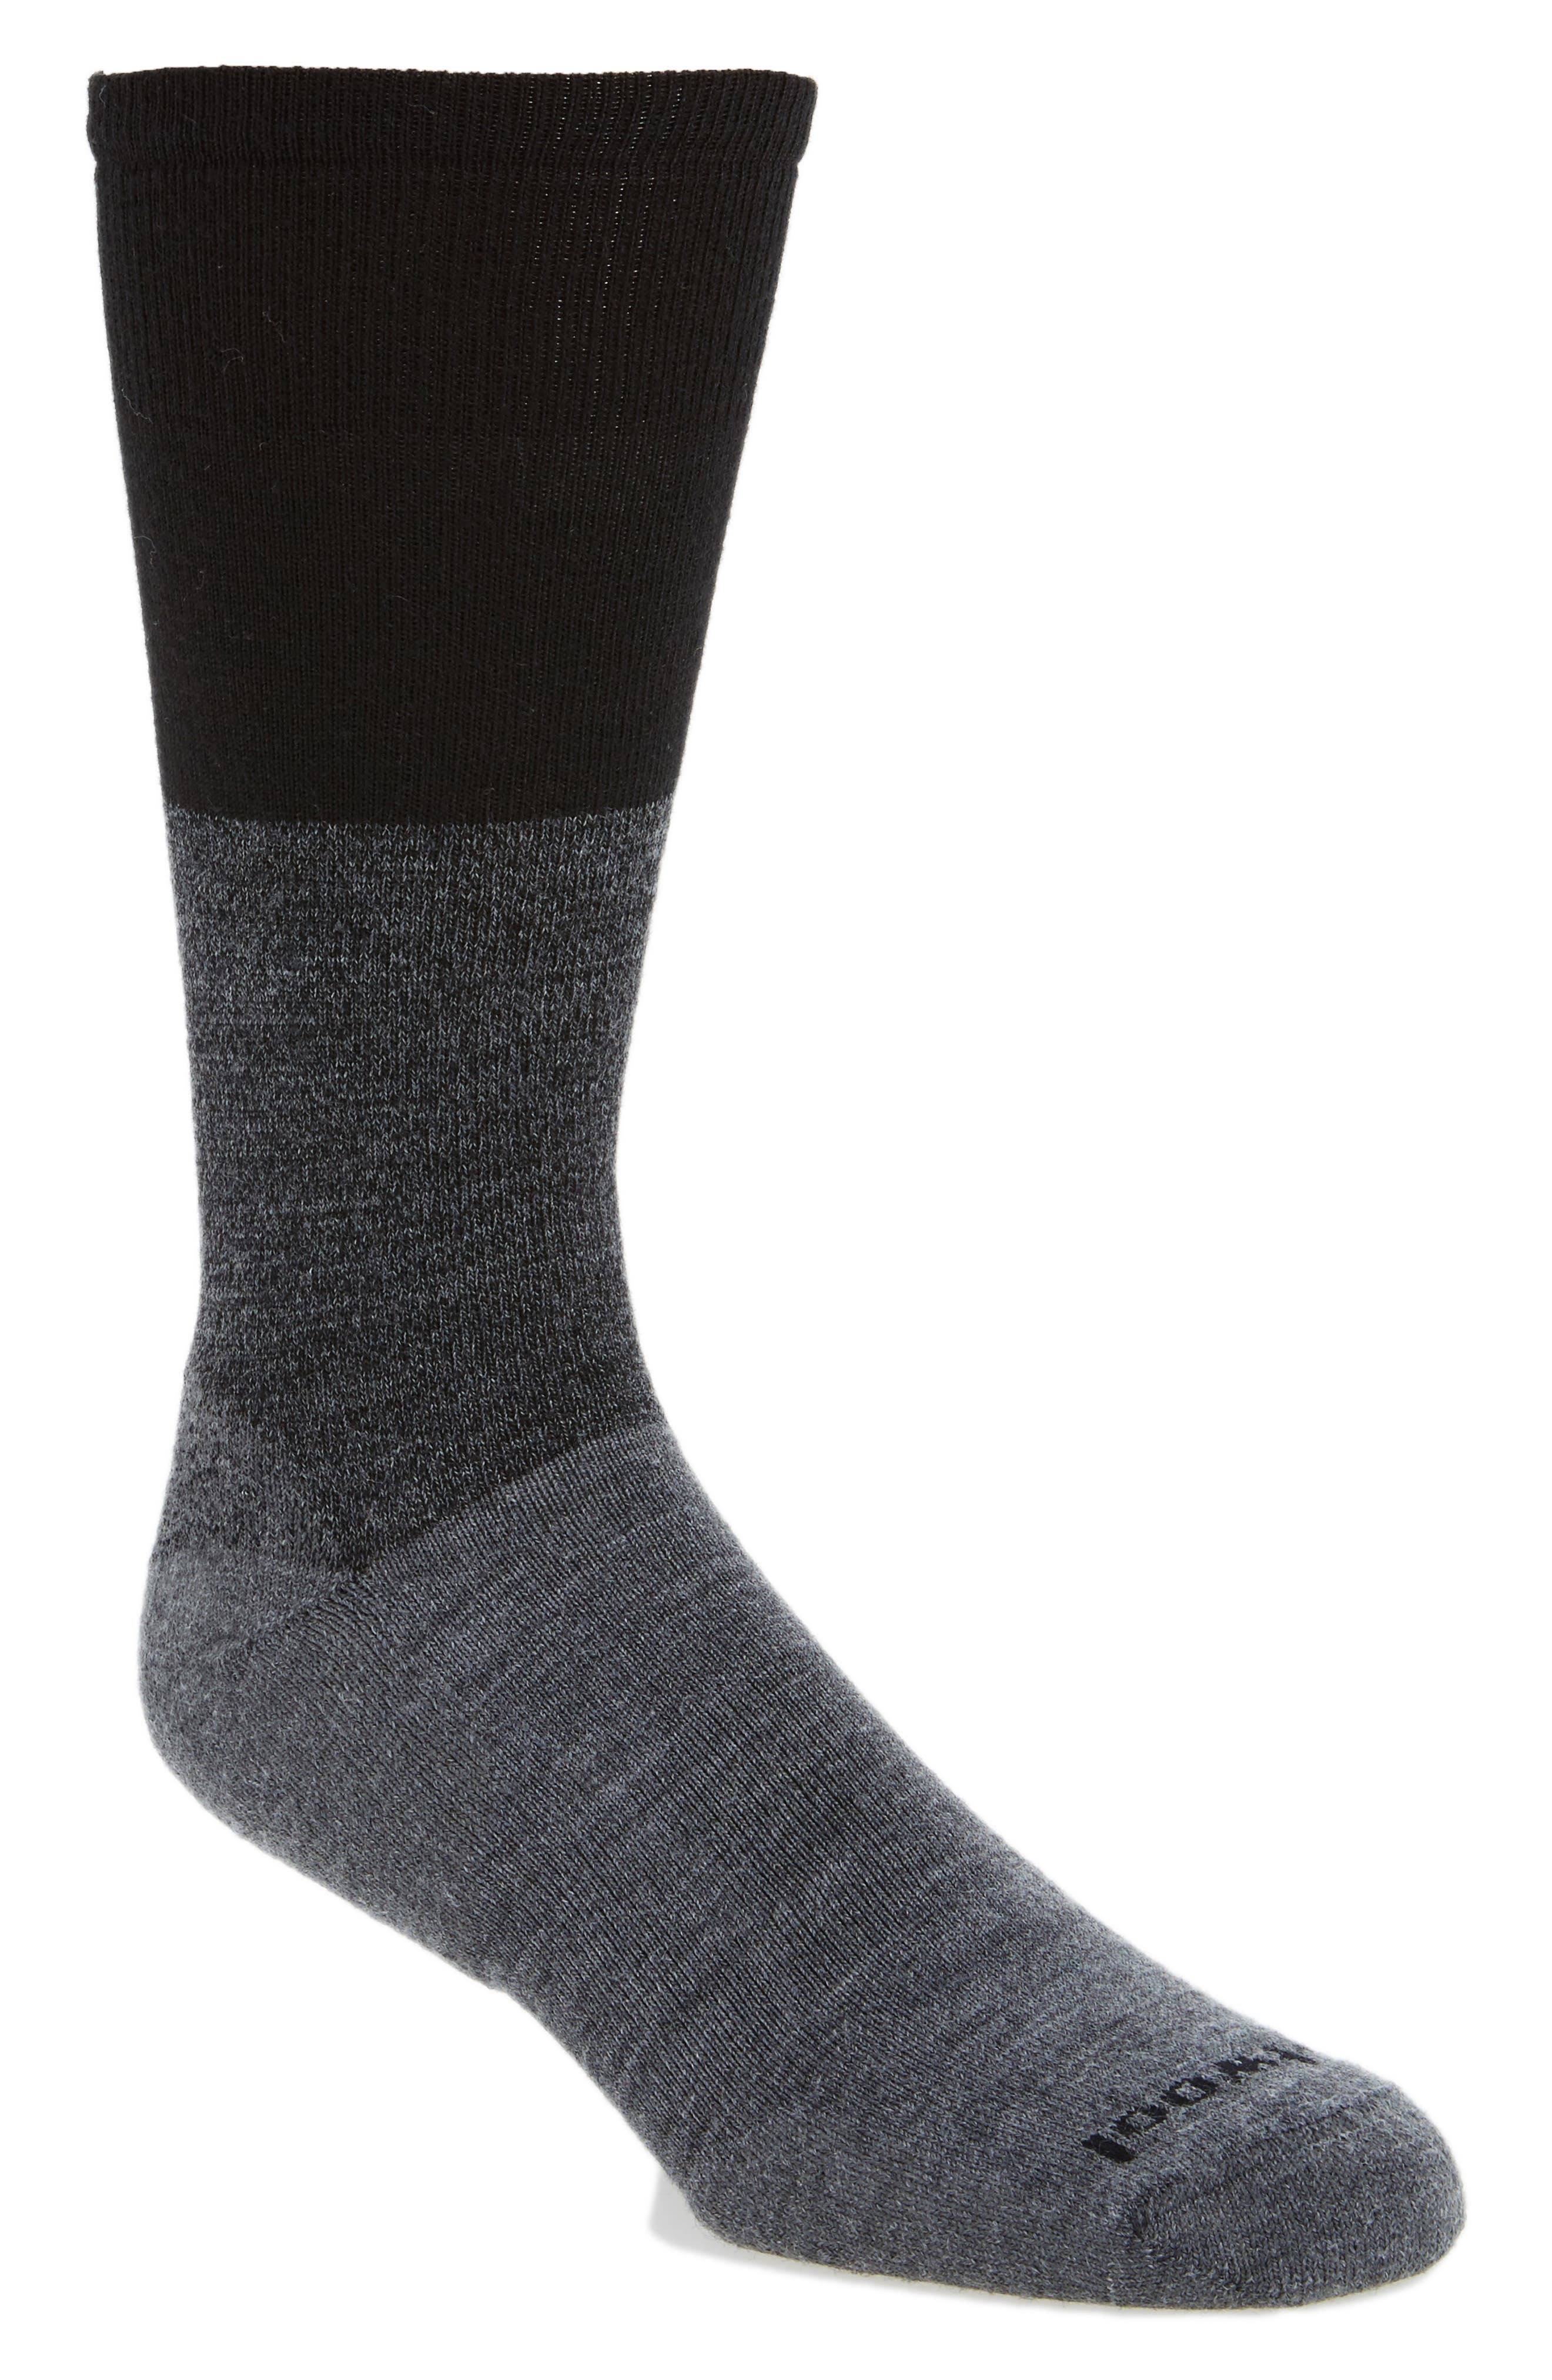 Smartwool Faversham Colorblock Socks